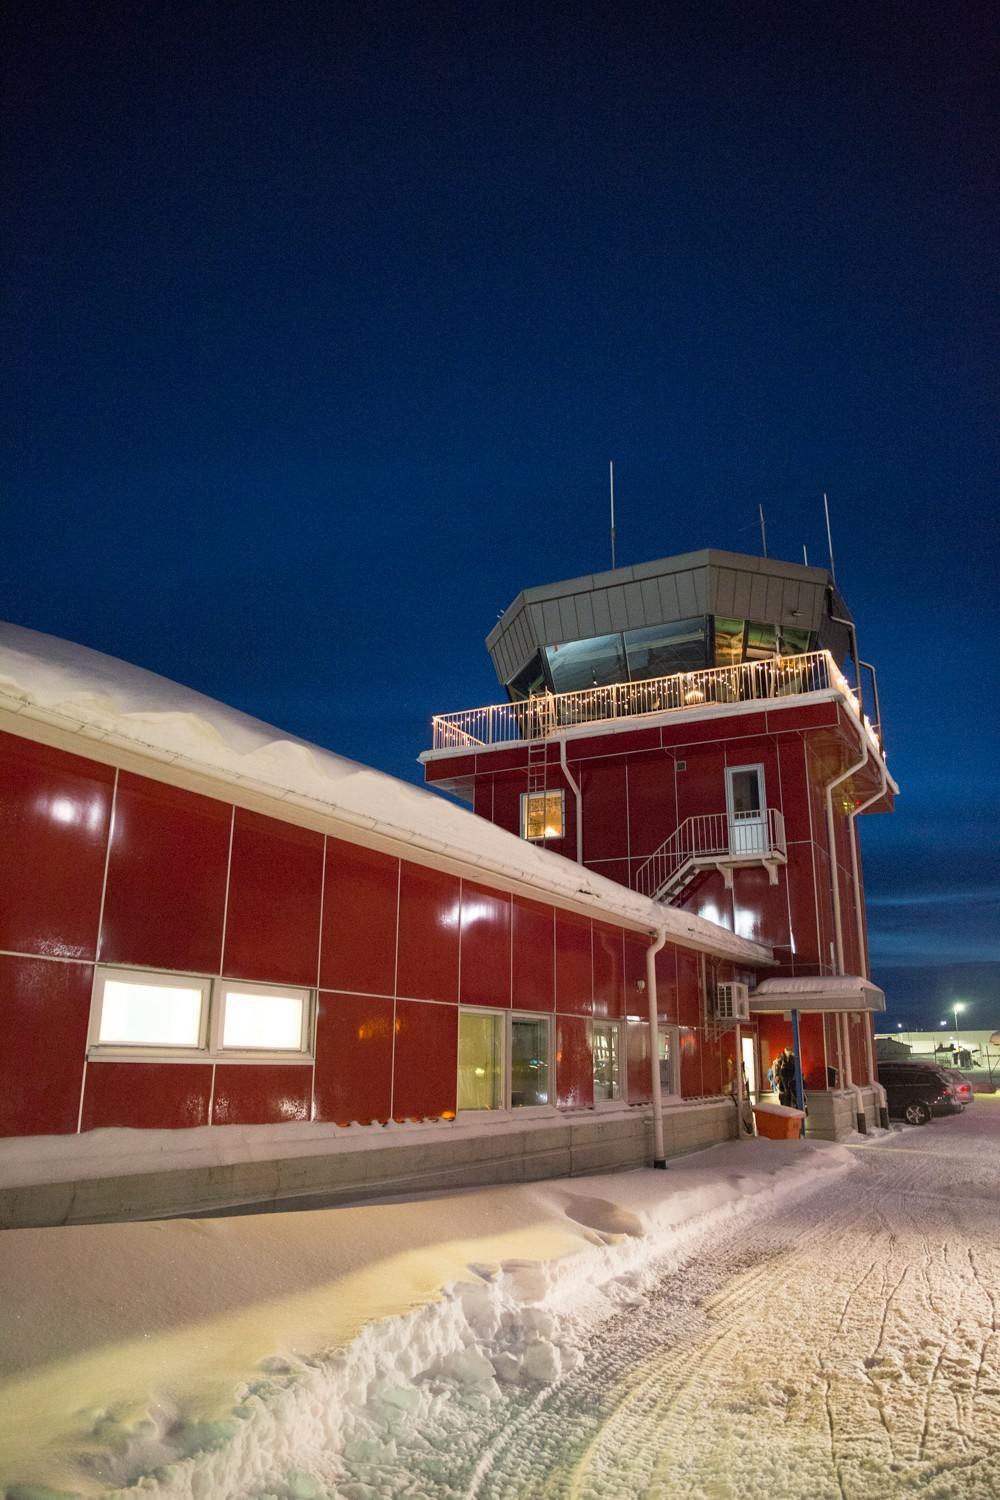 Lapland's little red airport